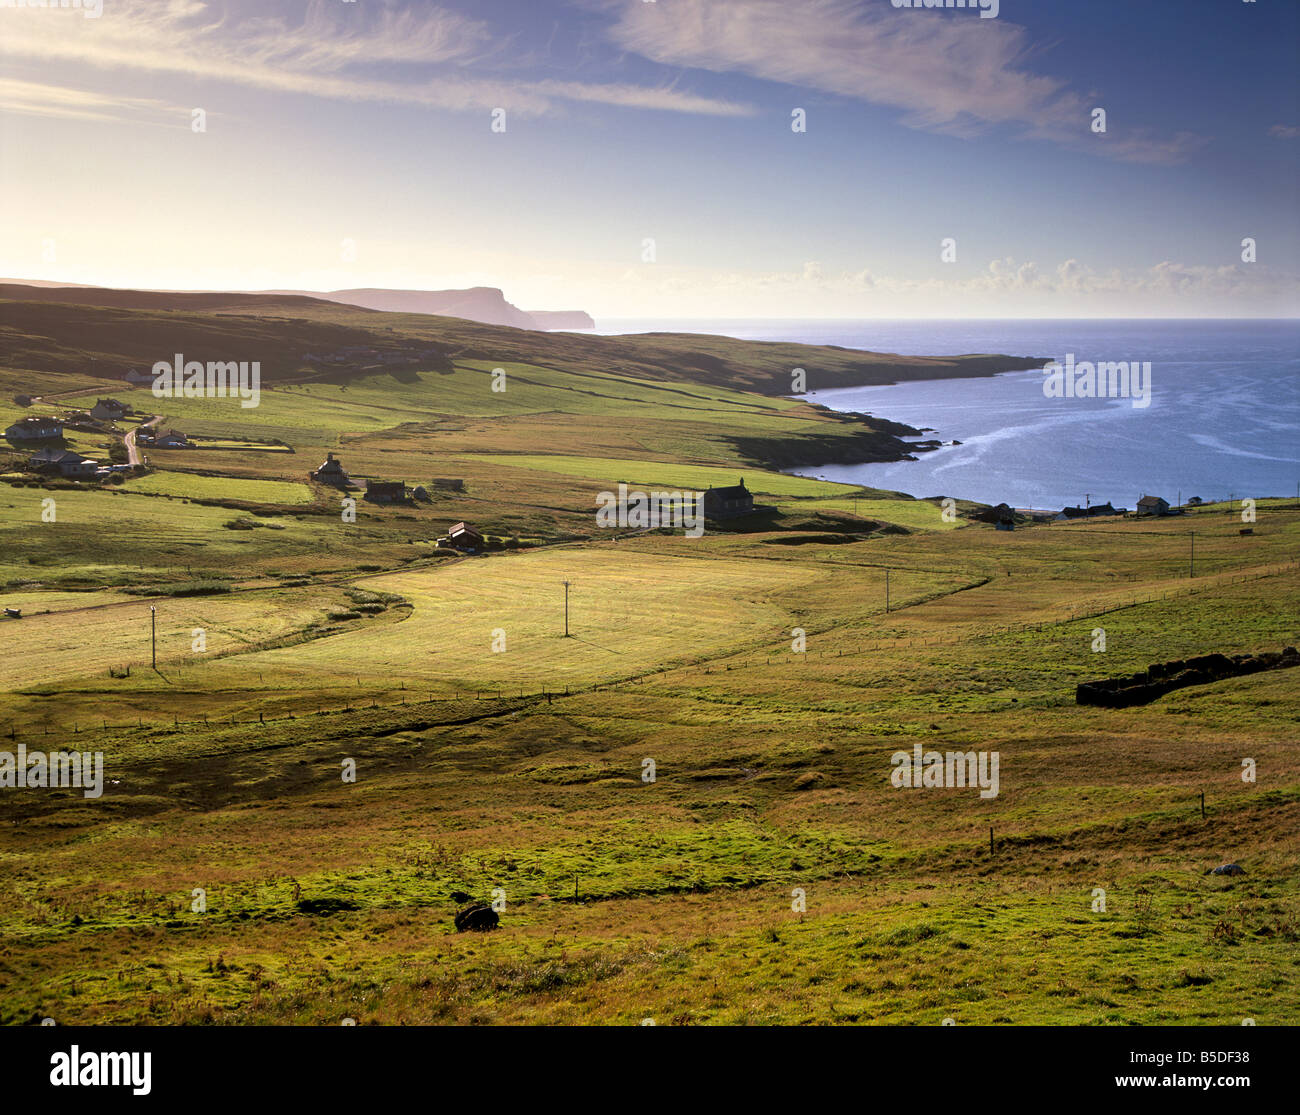 Trebister and Trebister Ness, Bressay and The Ord cliffs and Bard Head, Mainland, Shetland Islands, Scotland - Stock Image